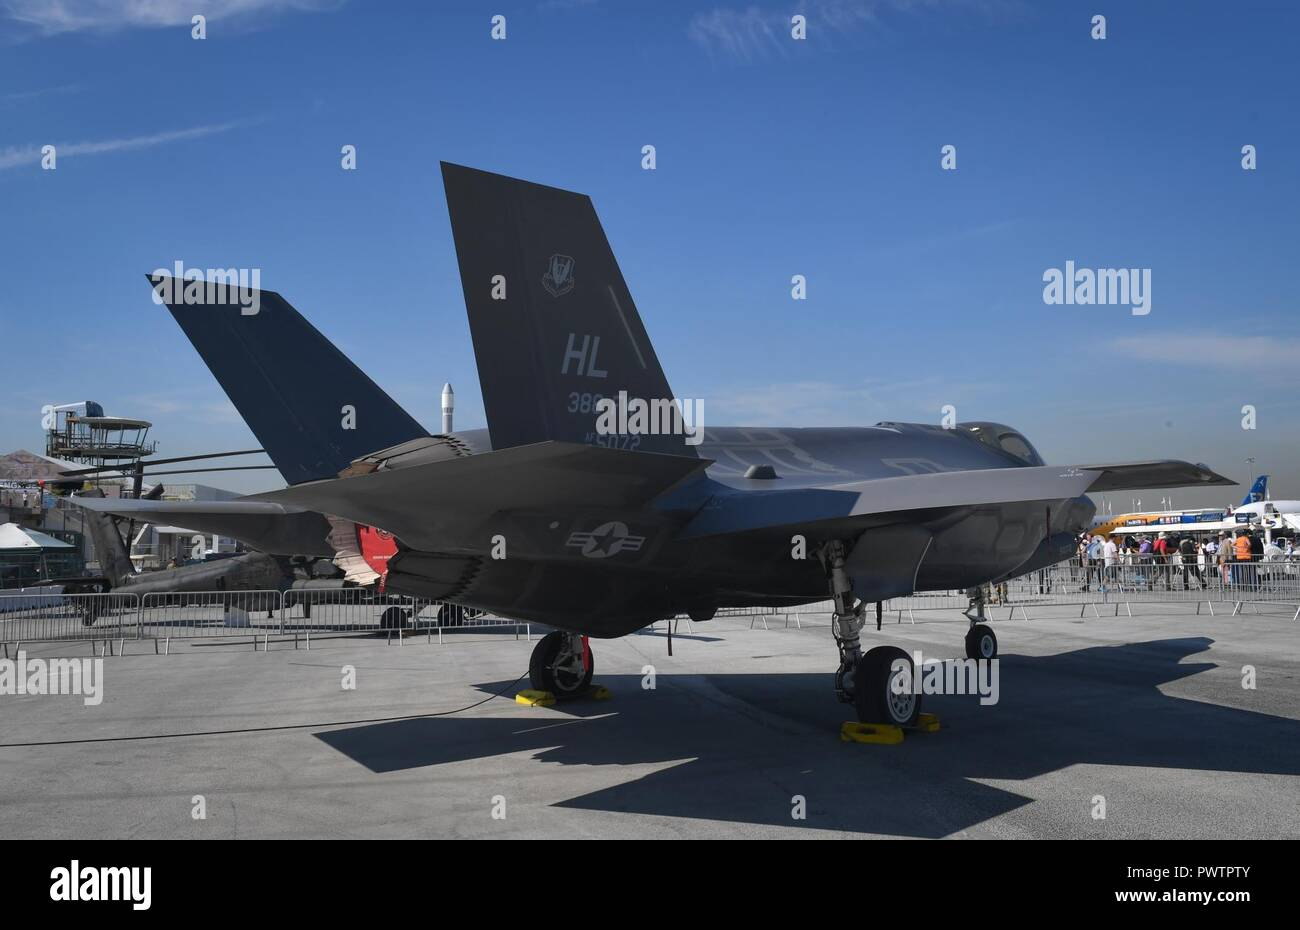 An F-35A Lightning II from Hill Air Force Base, Utah, is